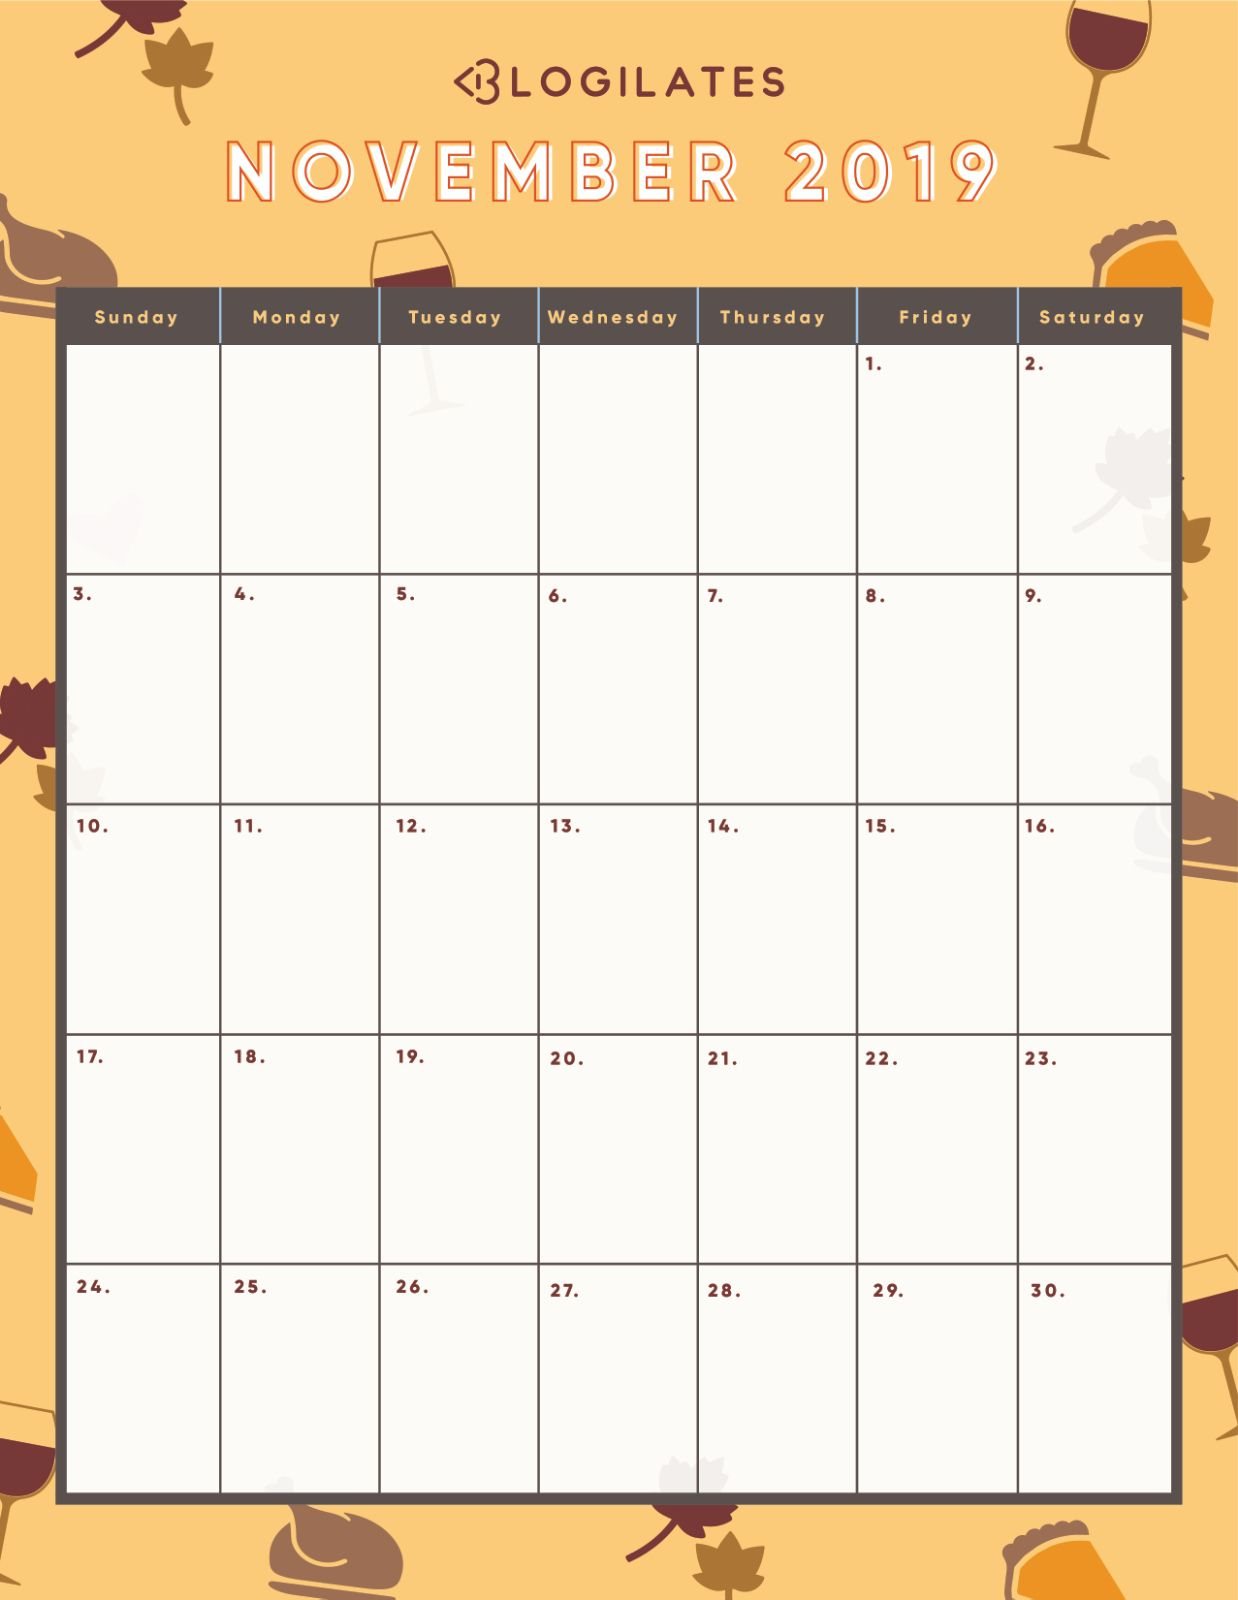 November 2019 Wall Calendar | November Calendar, Calendar in Blogilates December 2020 Calendar